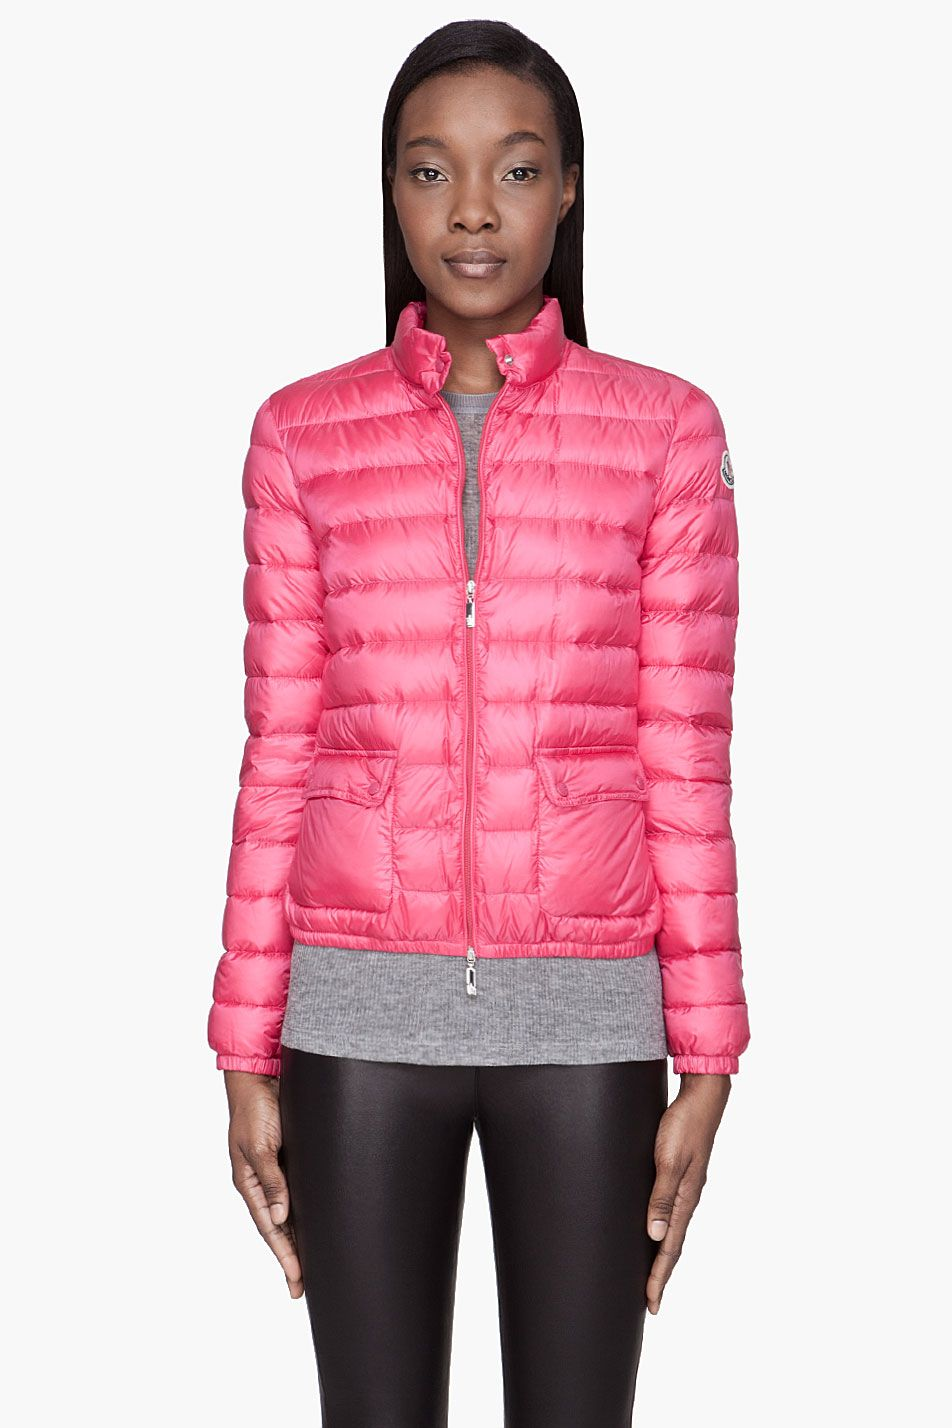 cdf4b7e98150 Moncler Fuchsia Pink Quilted Down Lans Jacket - Moncler Fuchsia Pink ...